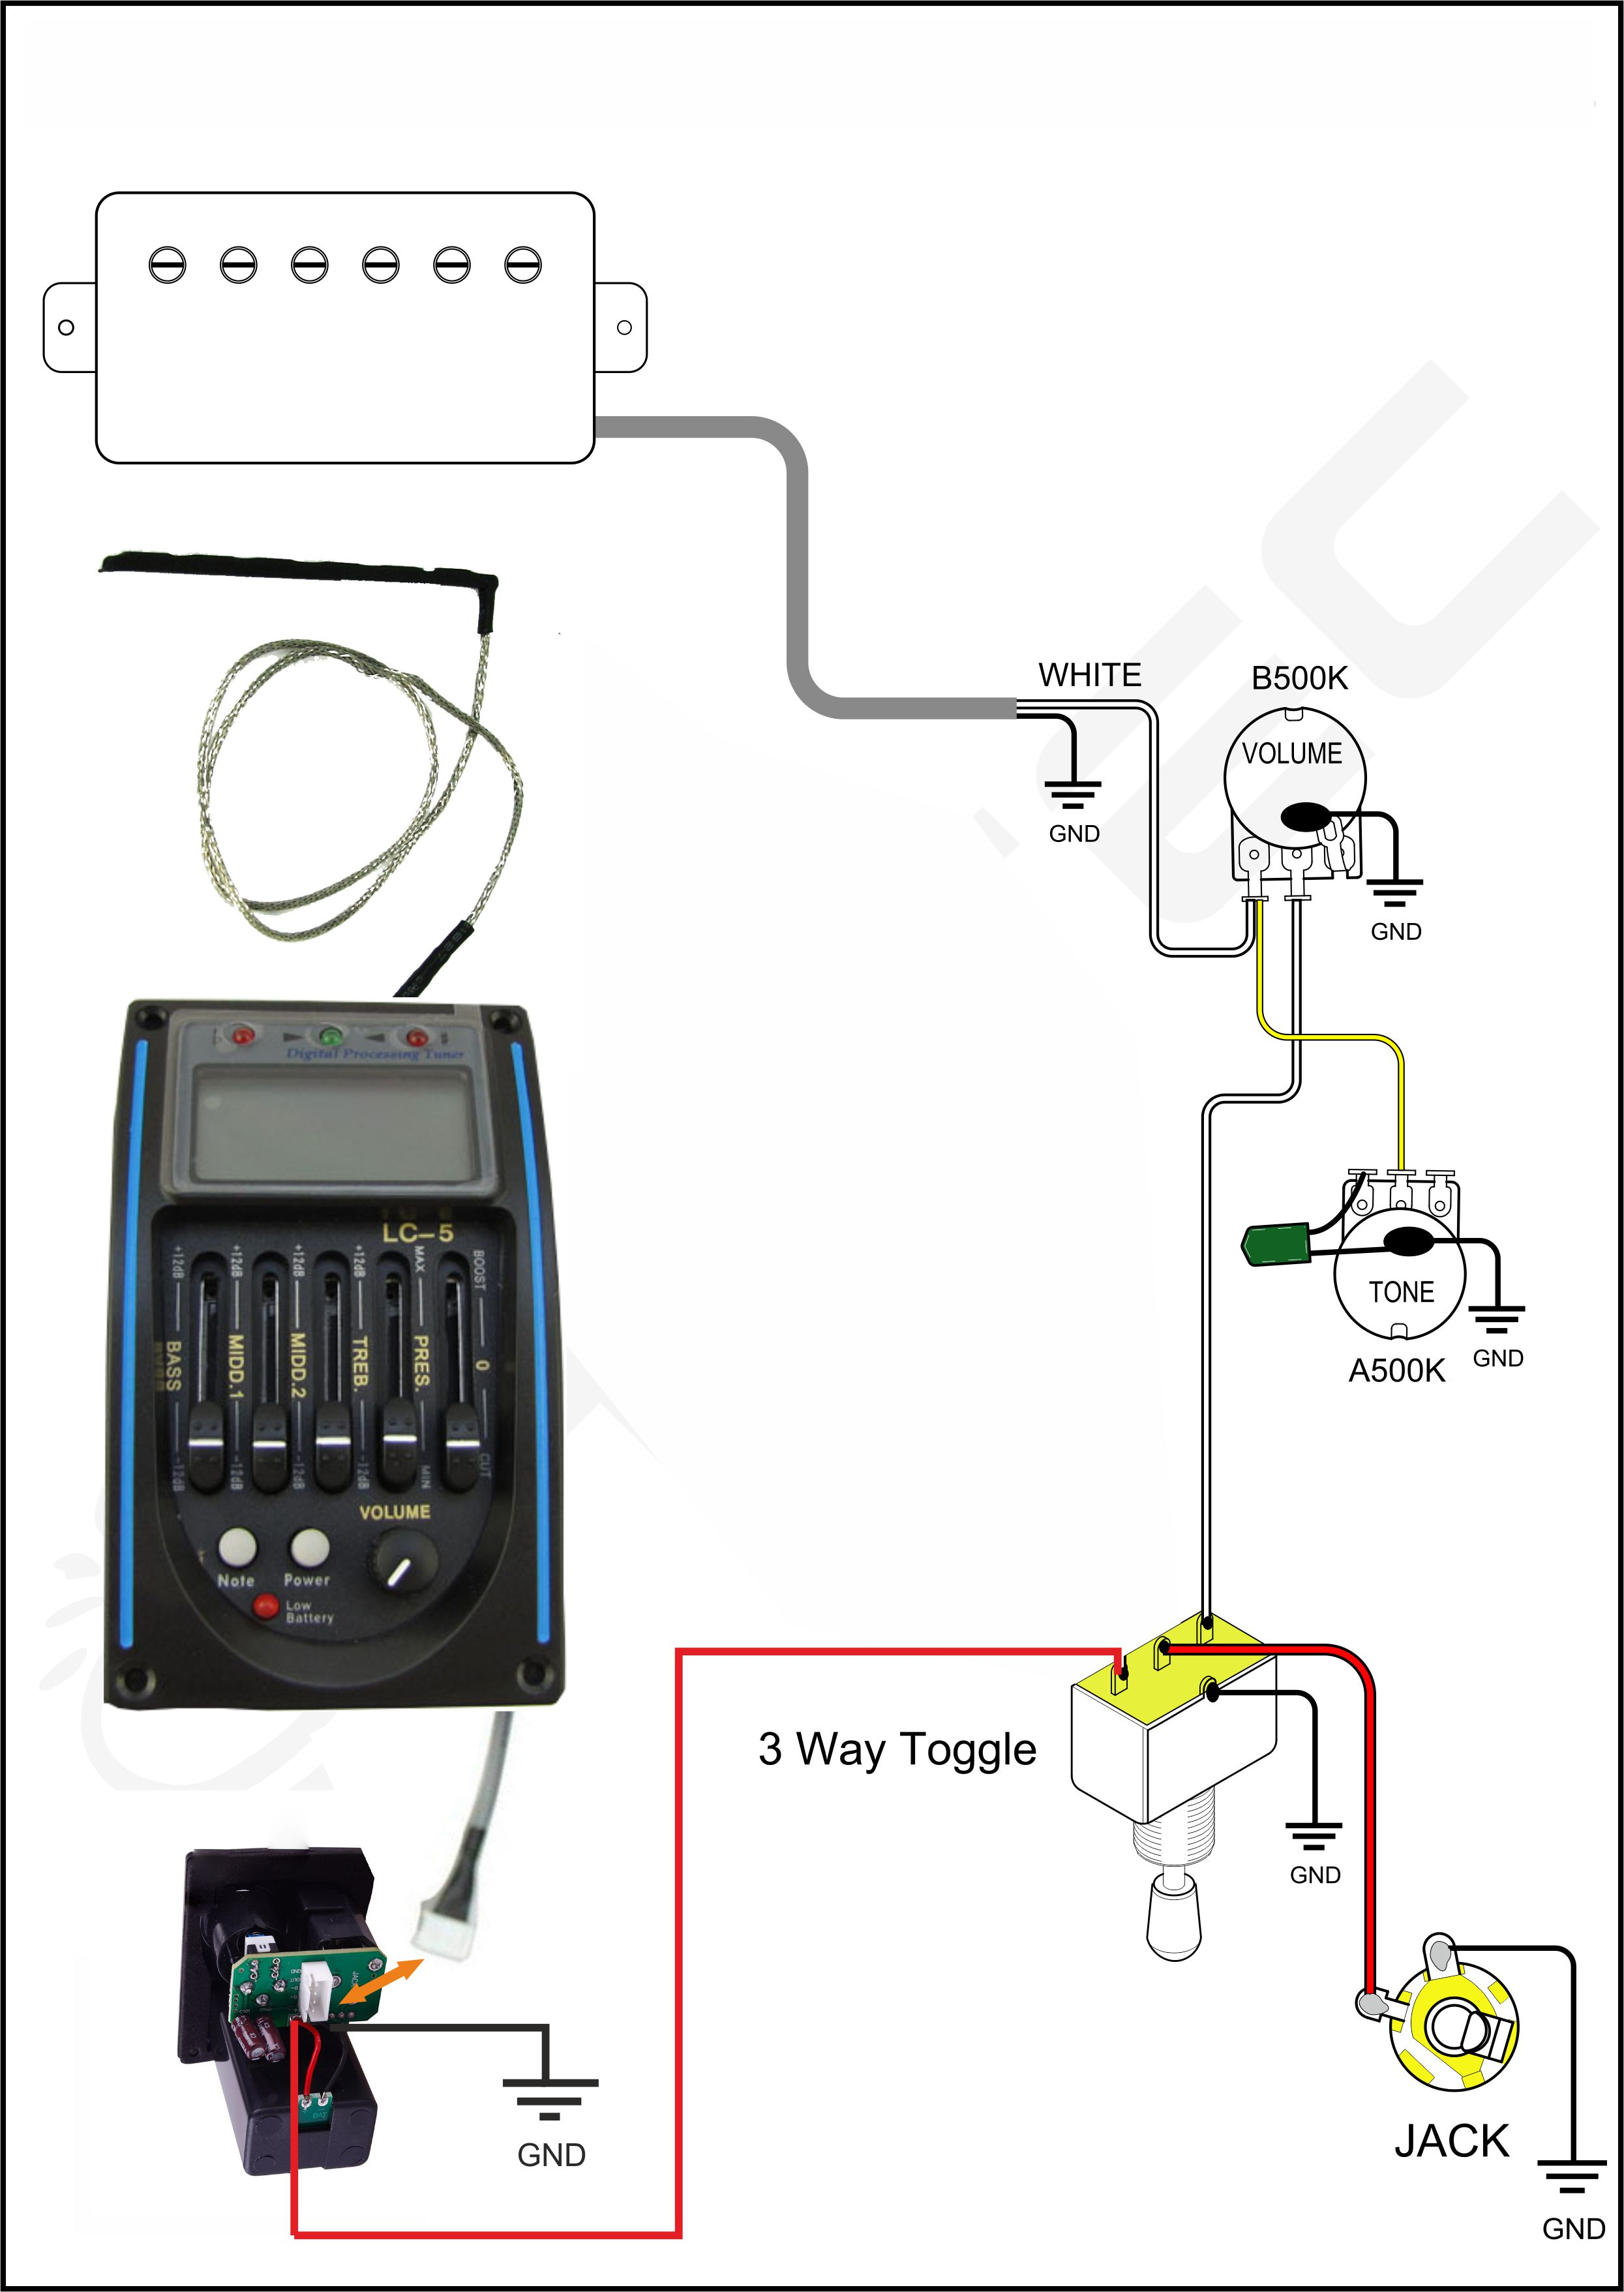 wiring a piezo pickup preamp system and a magnetic pickup with a 3i did a new image, to better explain my original idea, just to know if that could work; i need the preamp just for the piezo